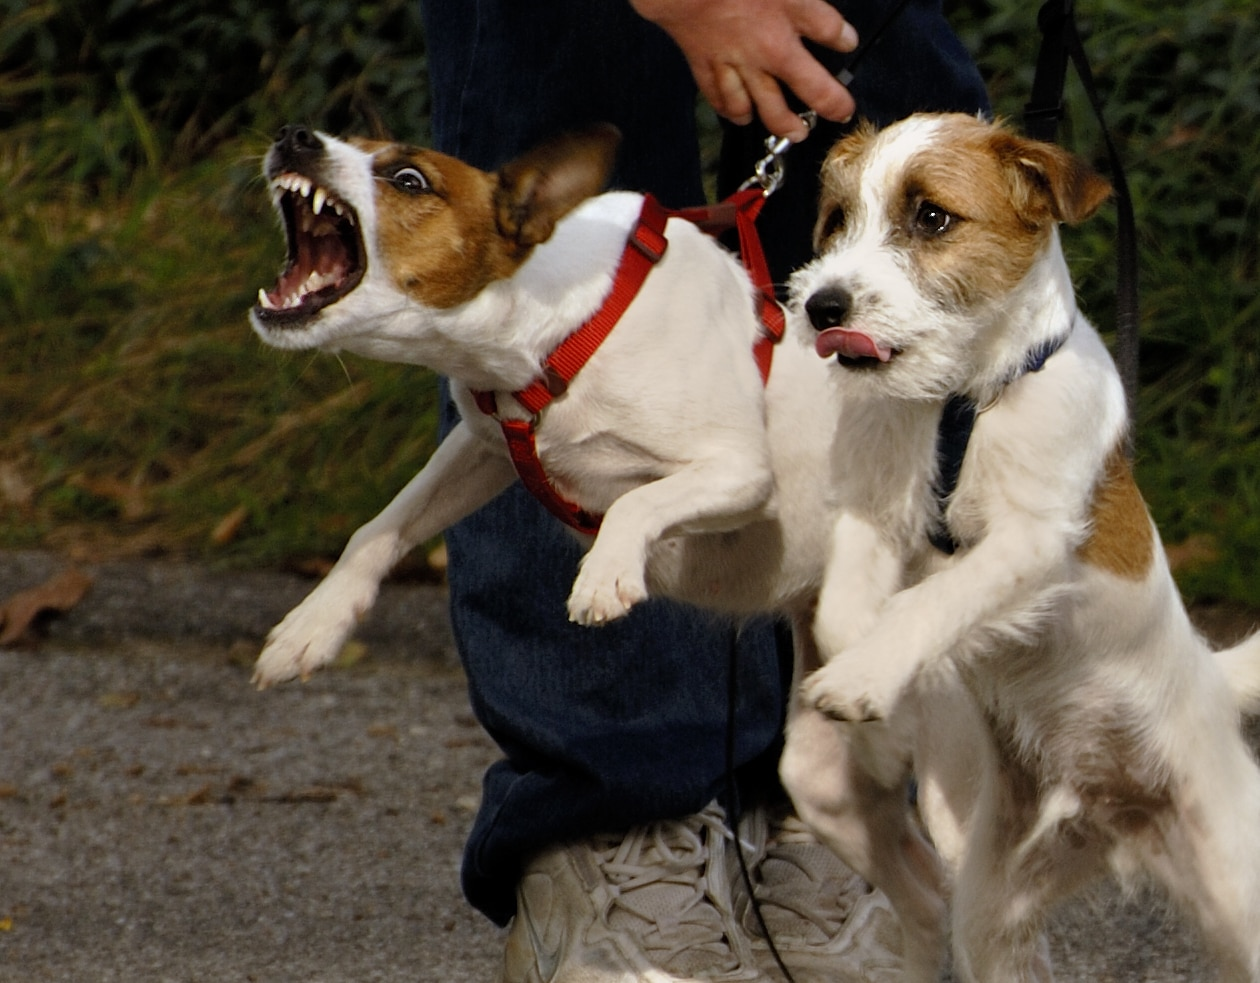 Jack Russell Terrier on a harness baring teeth next to another dog, while owner holds both back.